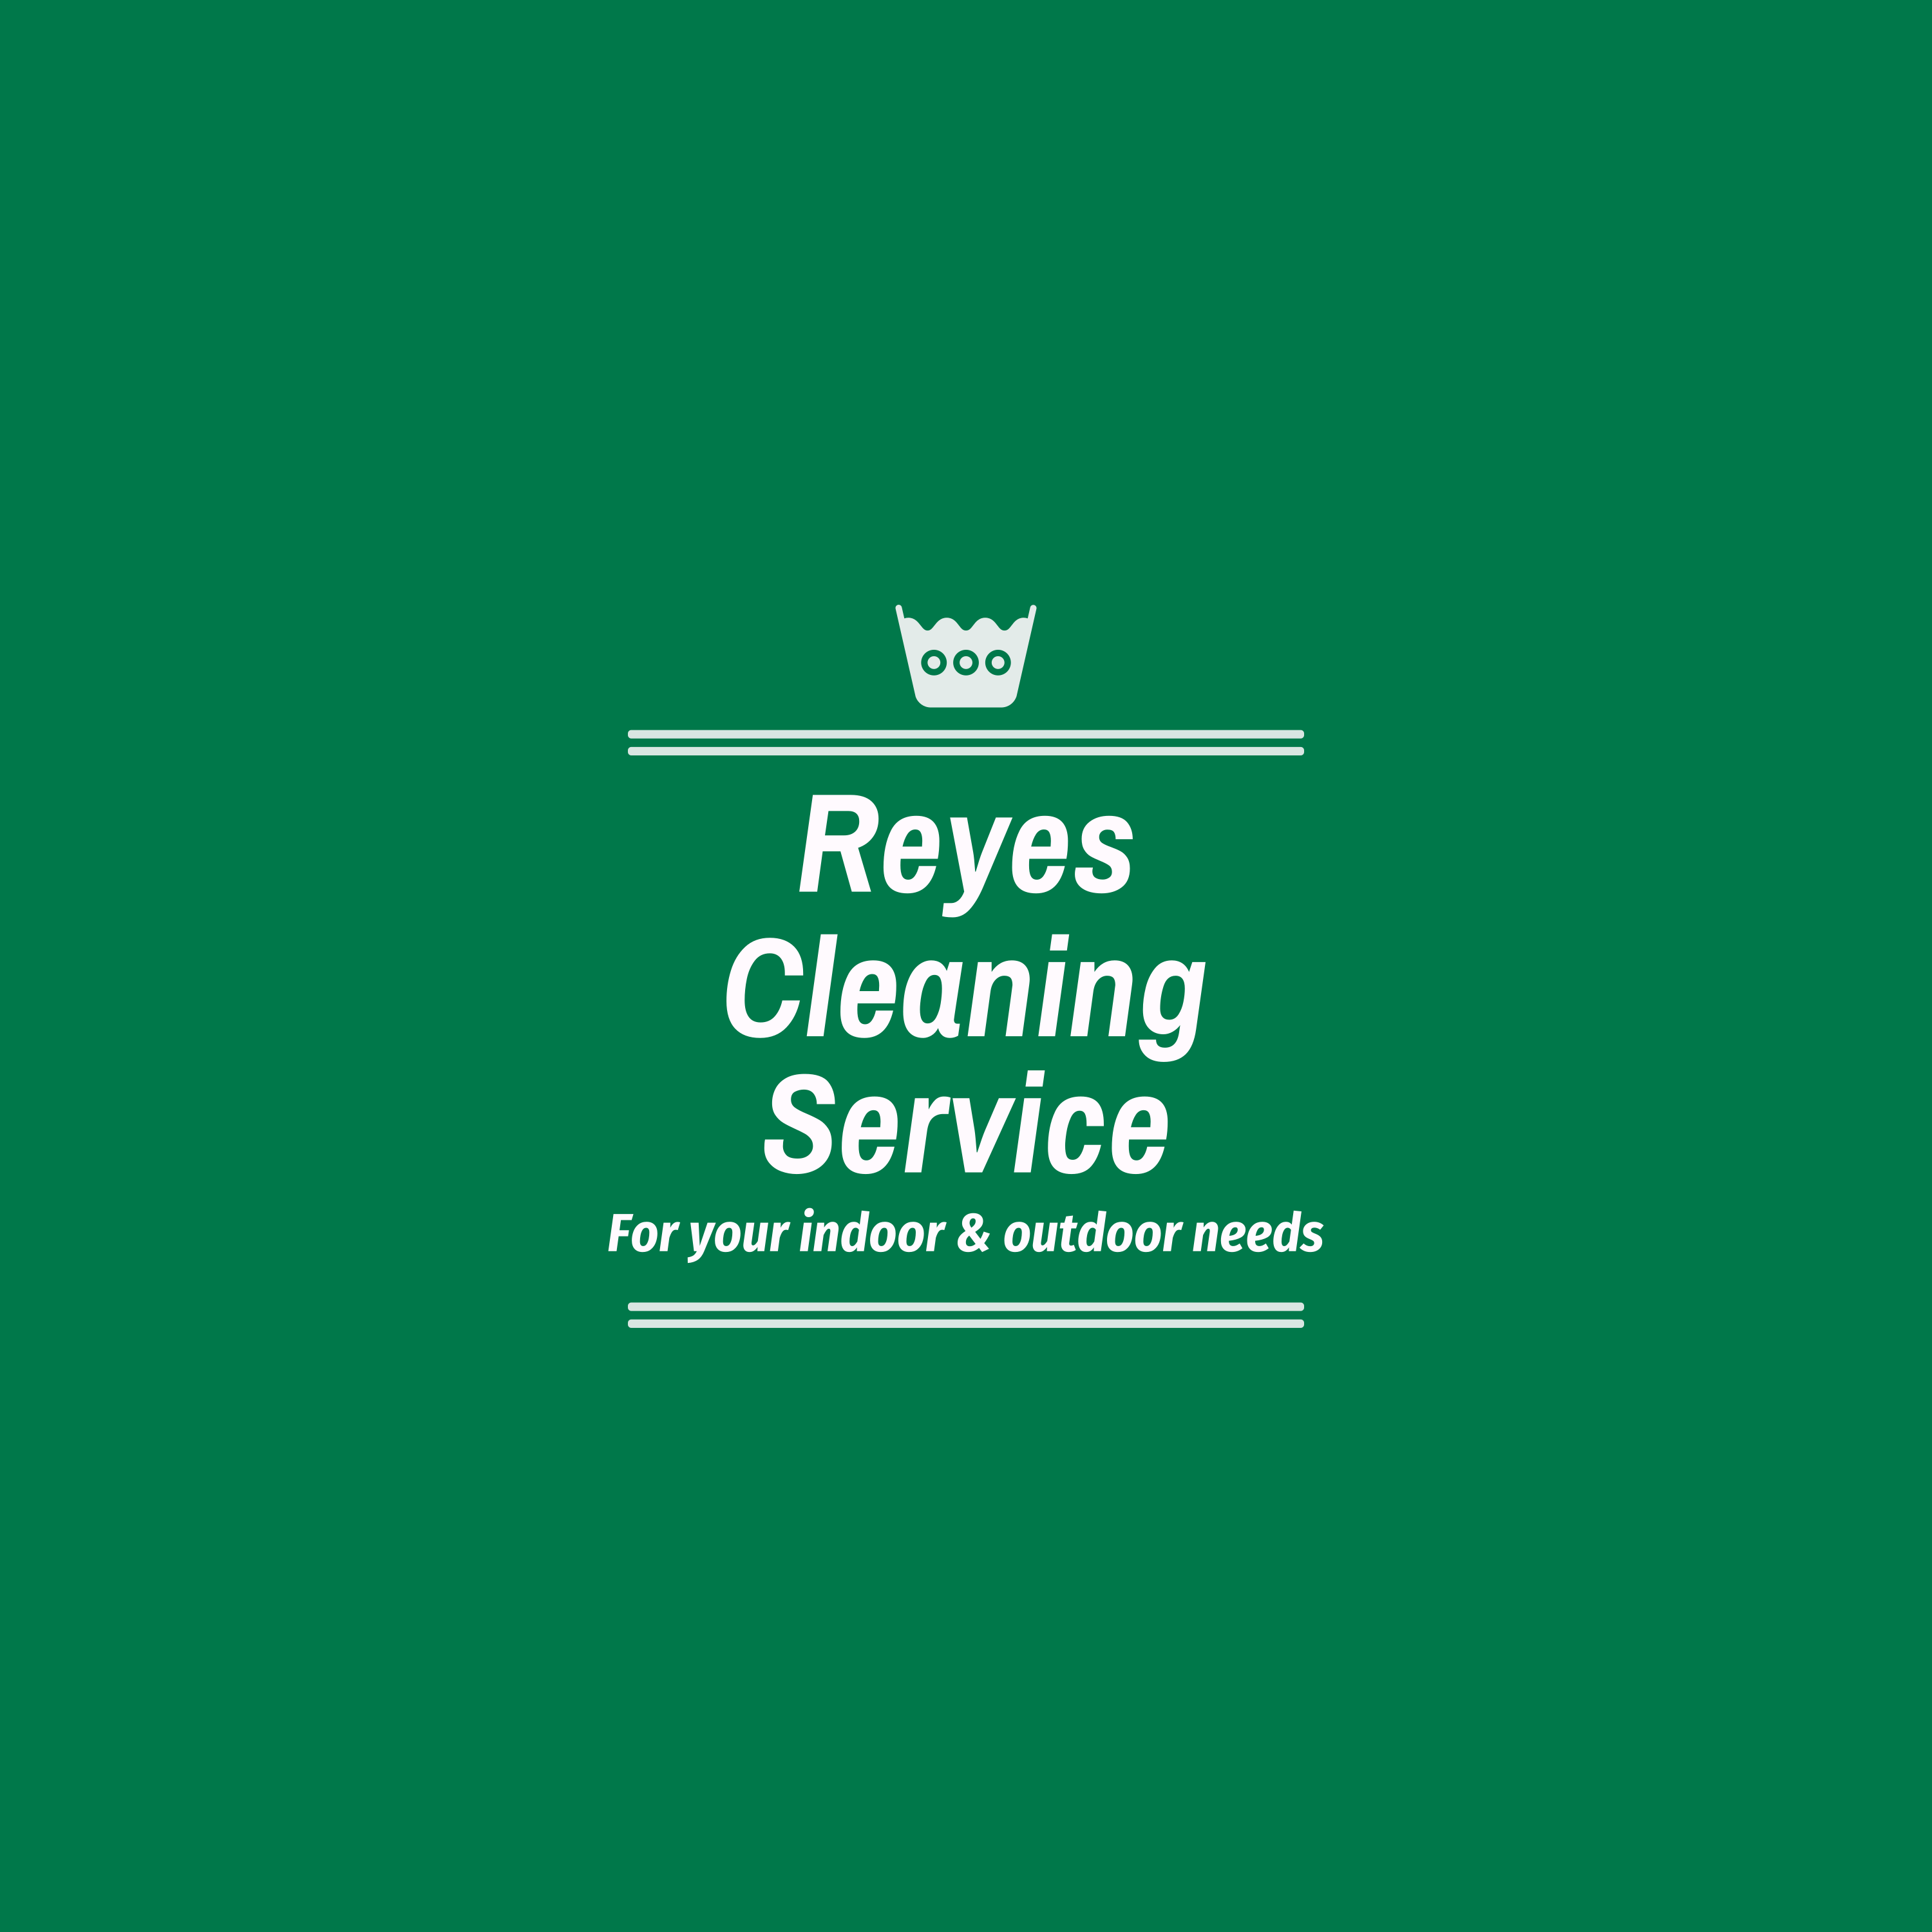 Reyes Cleaning Service